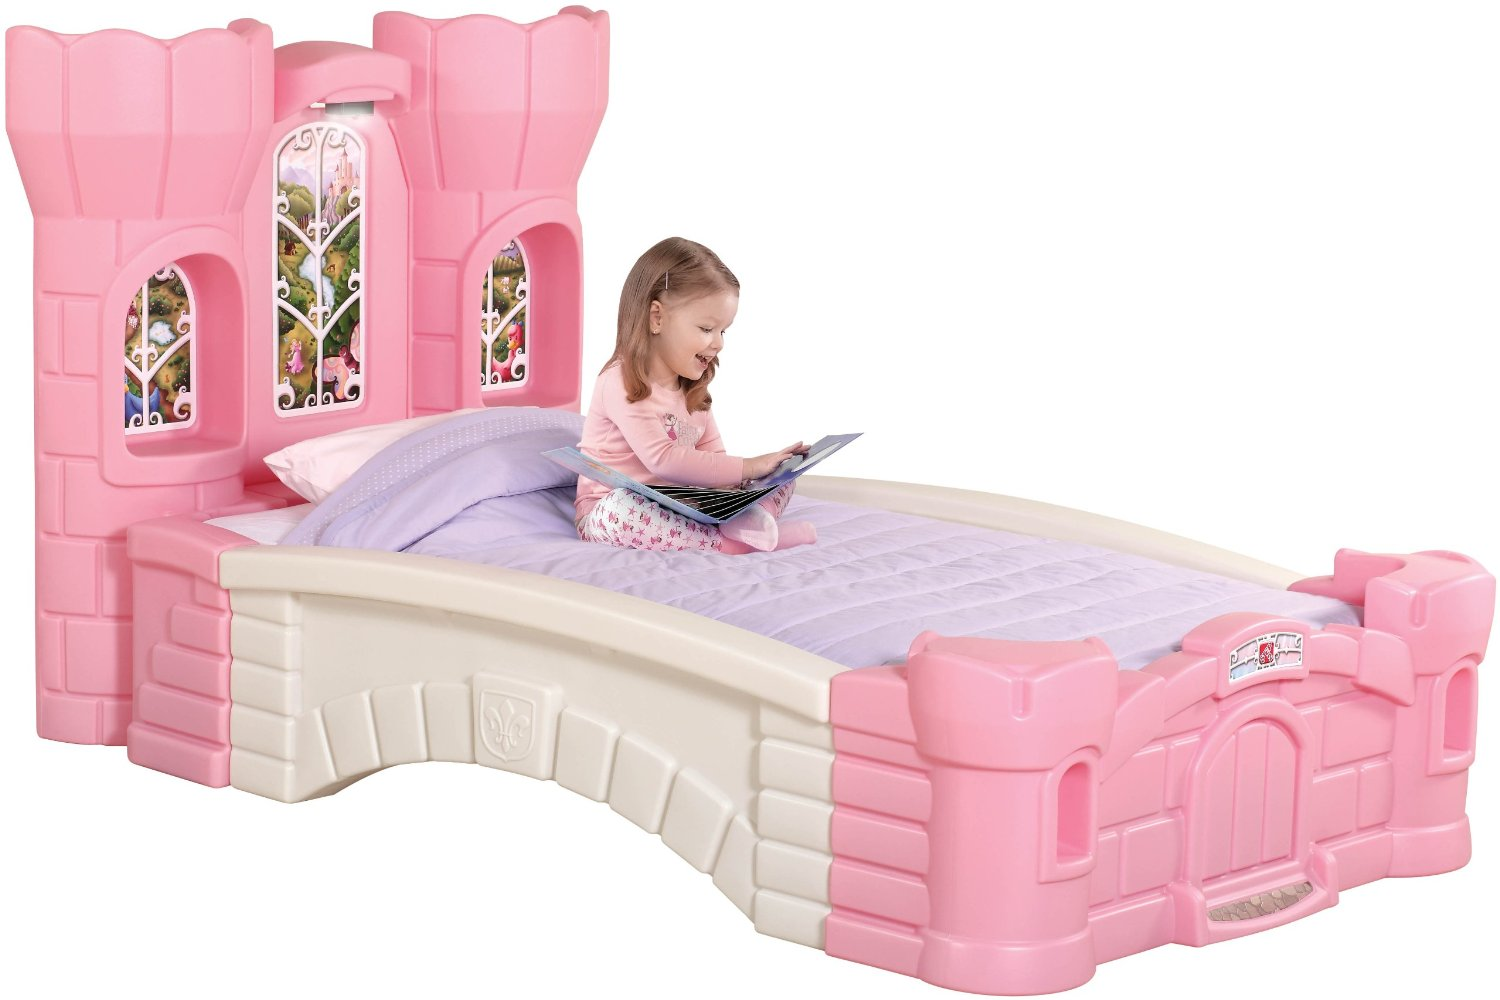 twin toddler under with bed storage us girl beds cheap of toys medium toddlers size r for